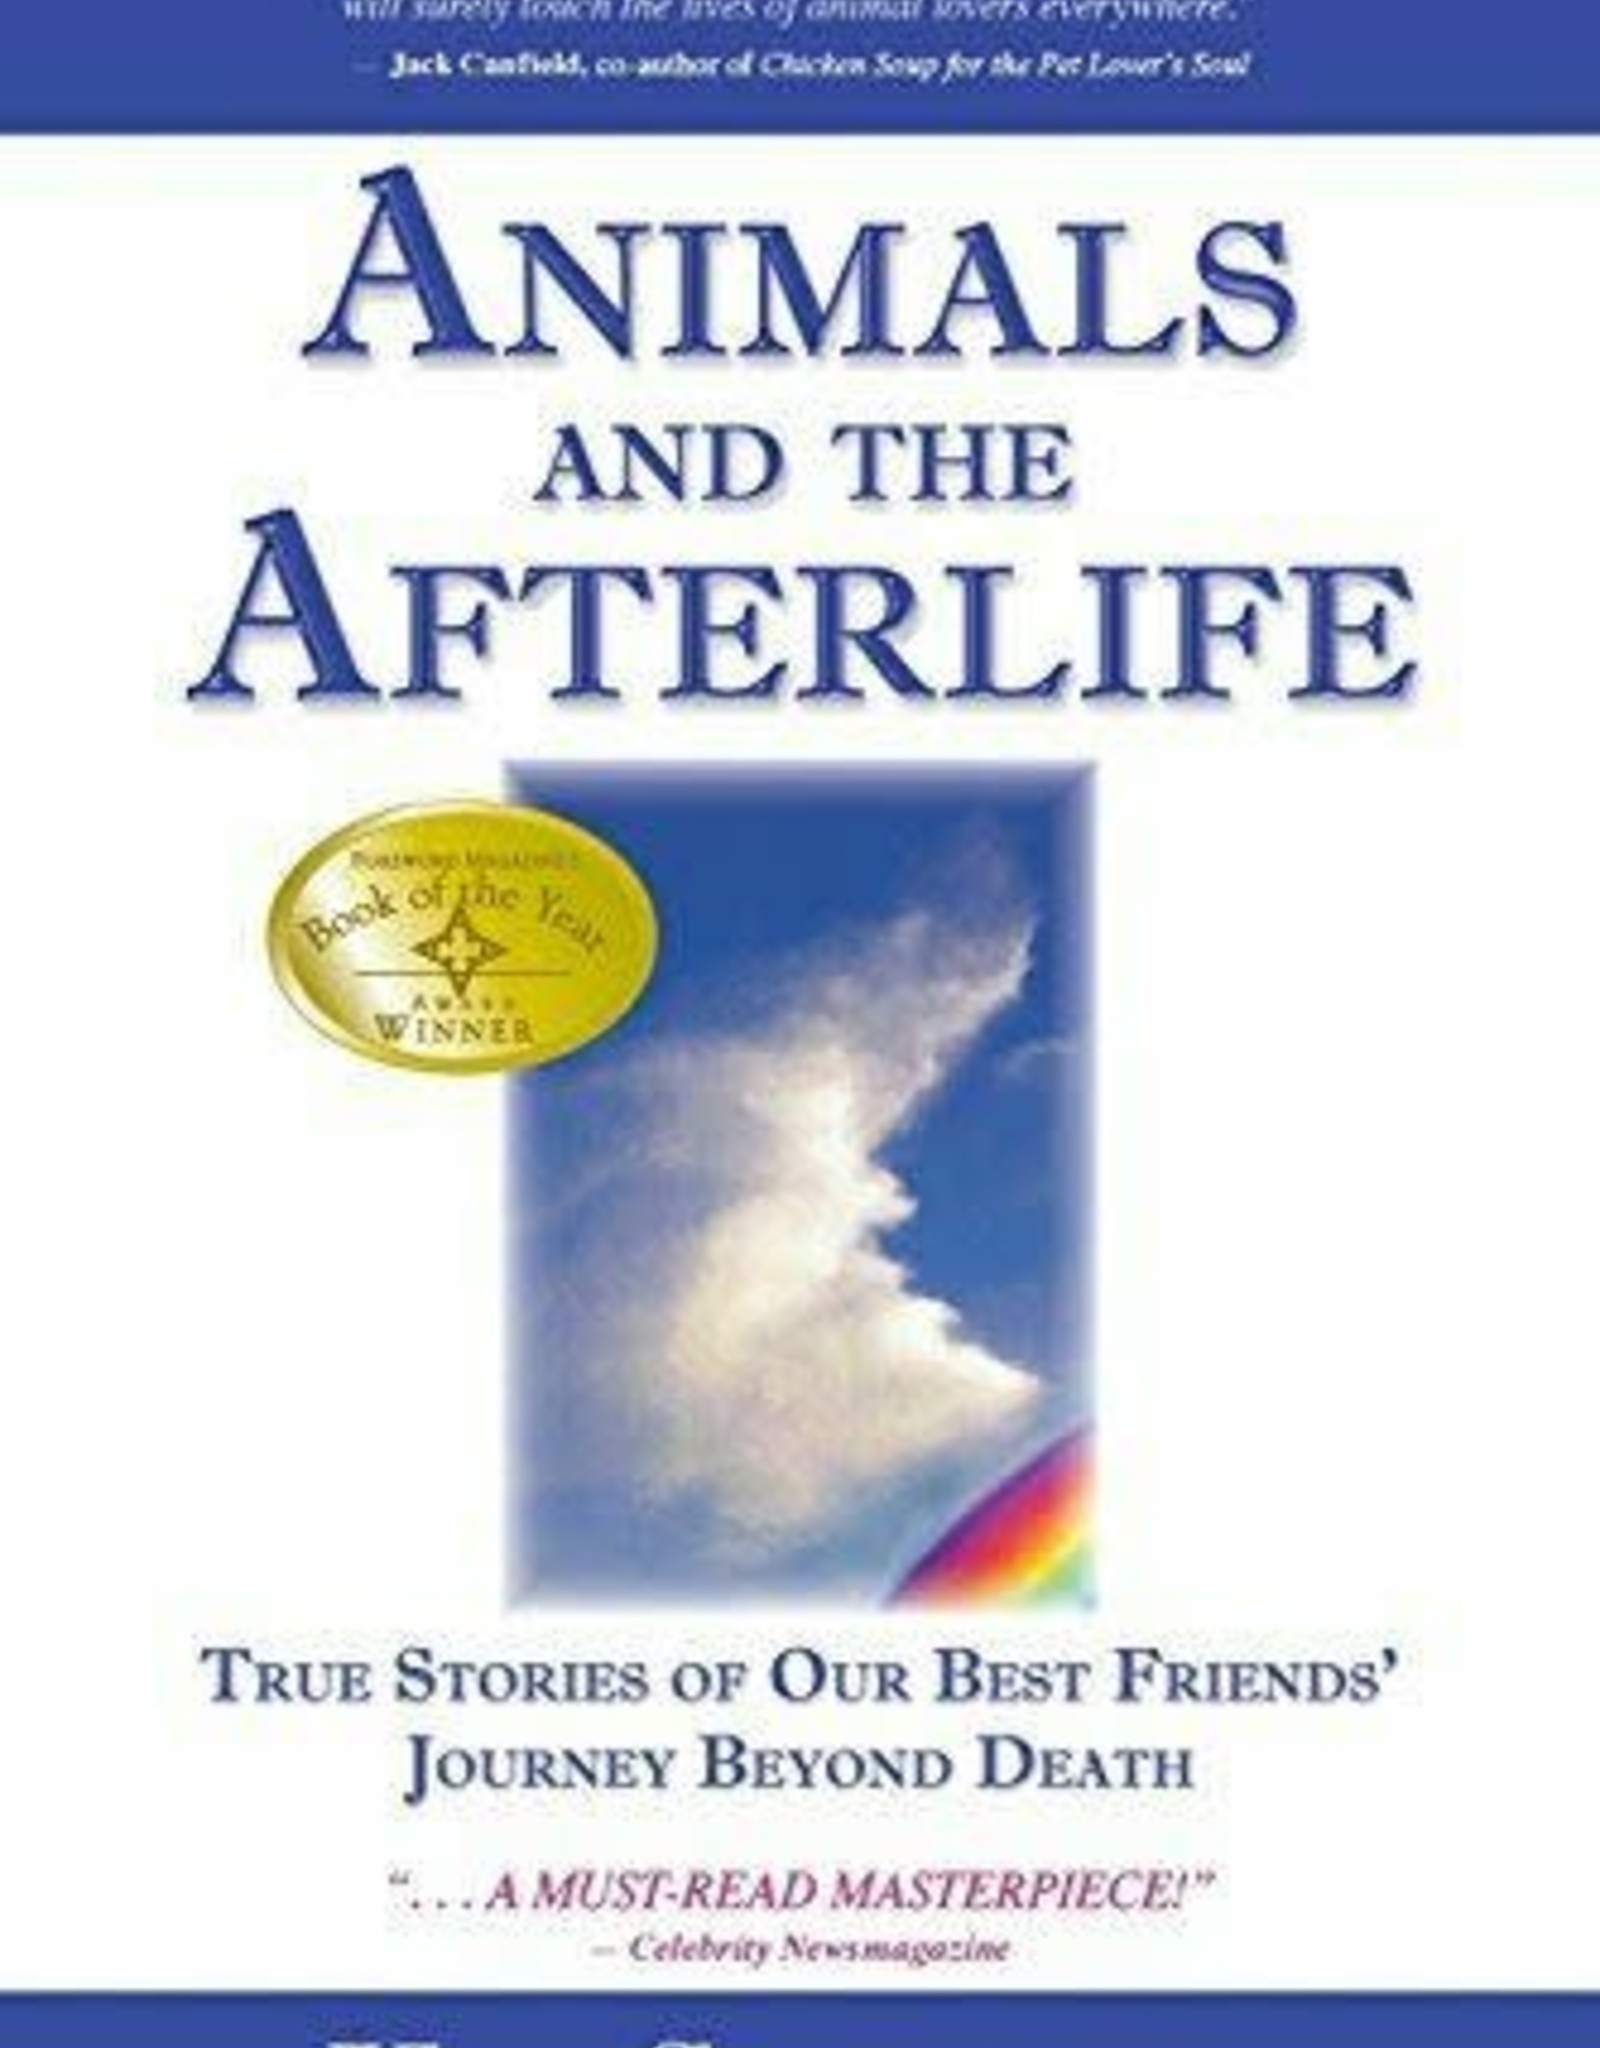 Kim Sheridan Animals and the Afterlife by Kim Sheridan